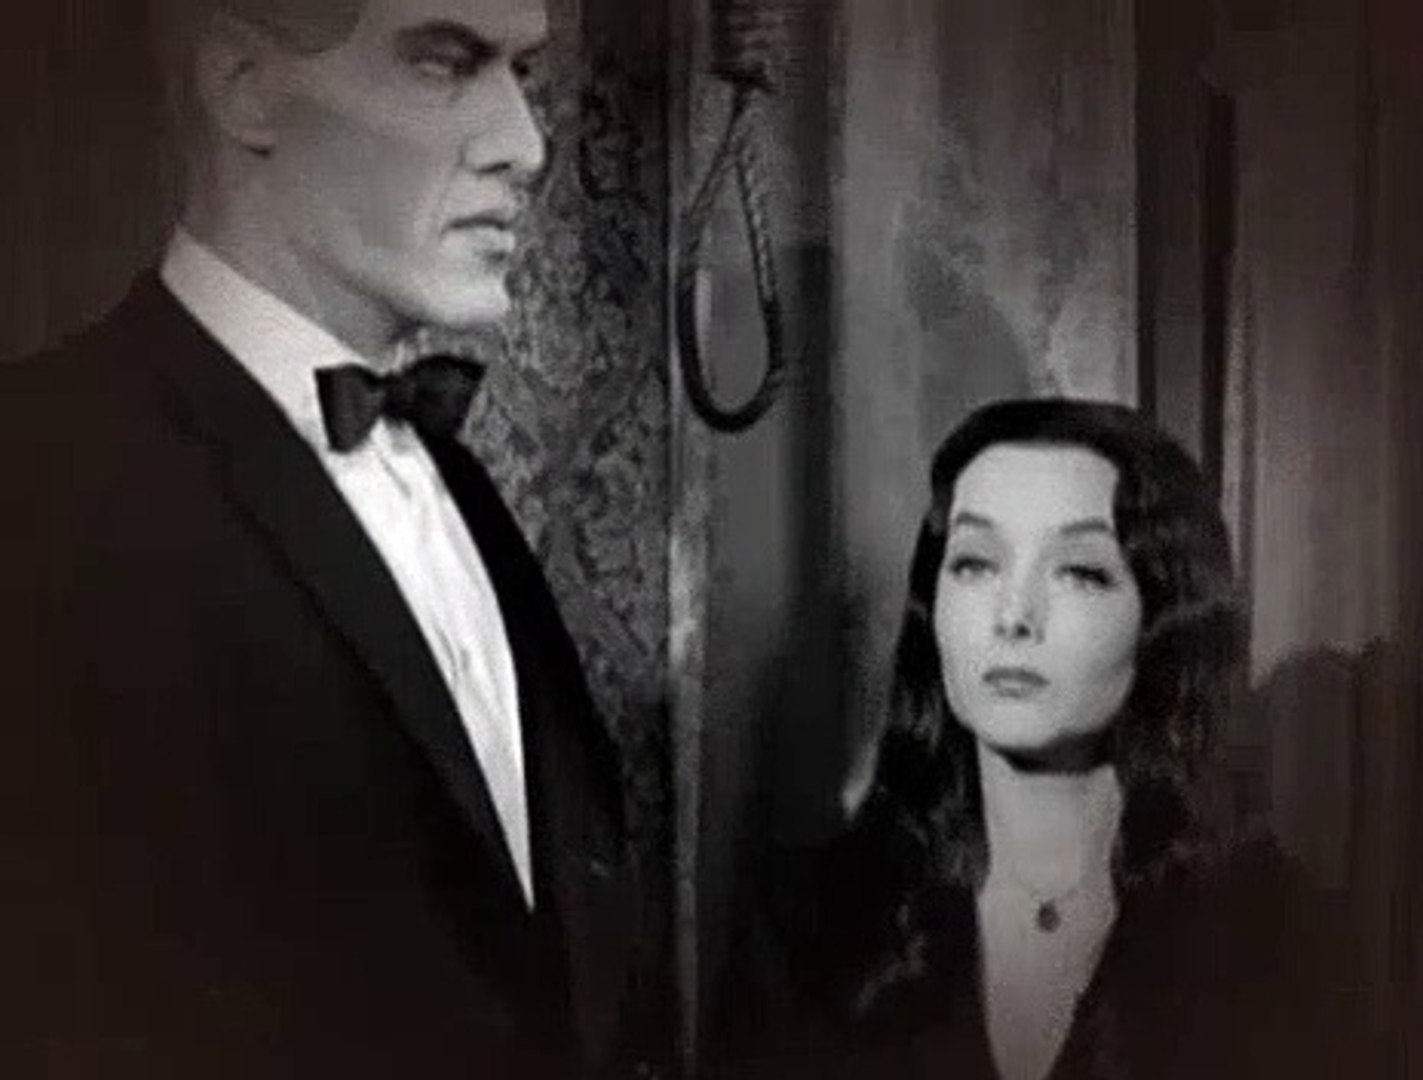 Addams Family S01E30 Progess and the Addams Family